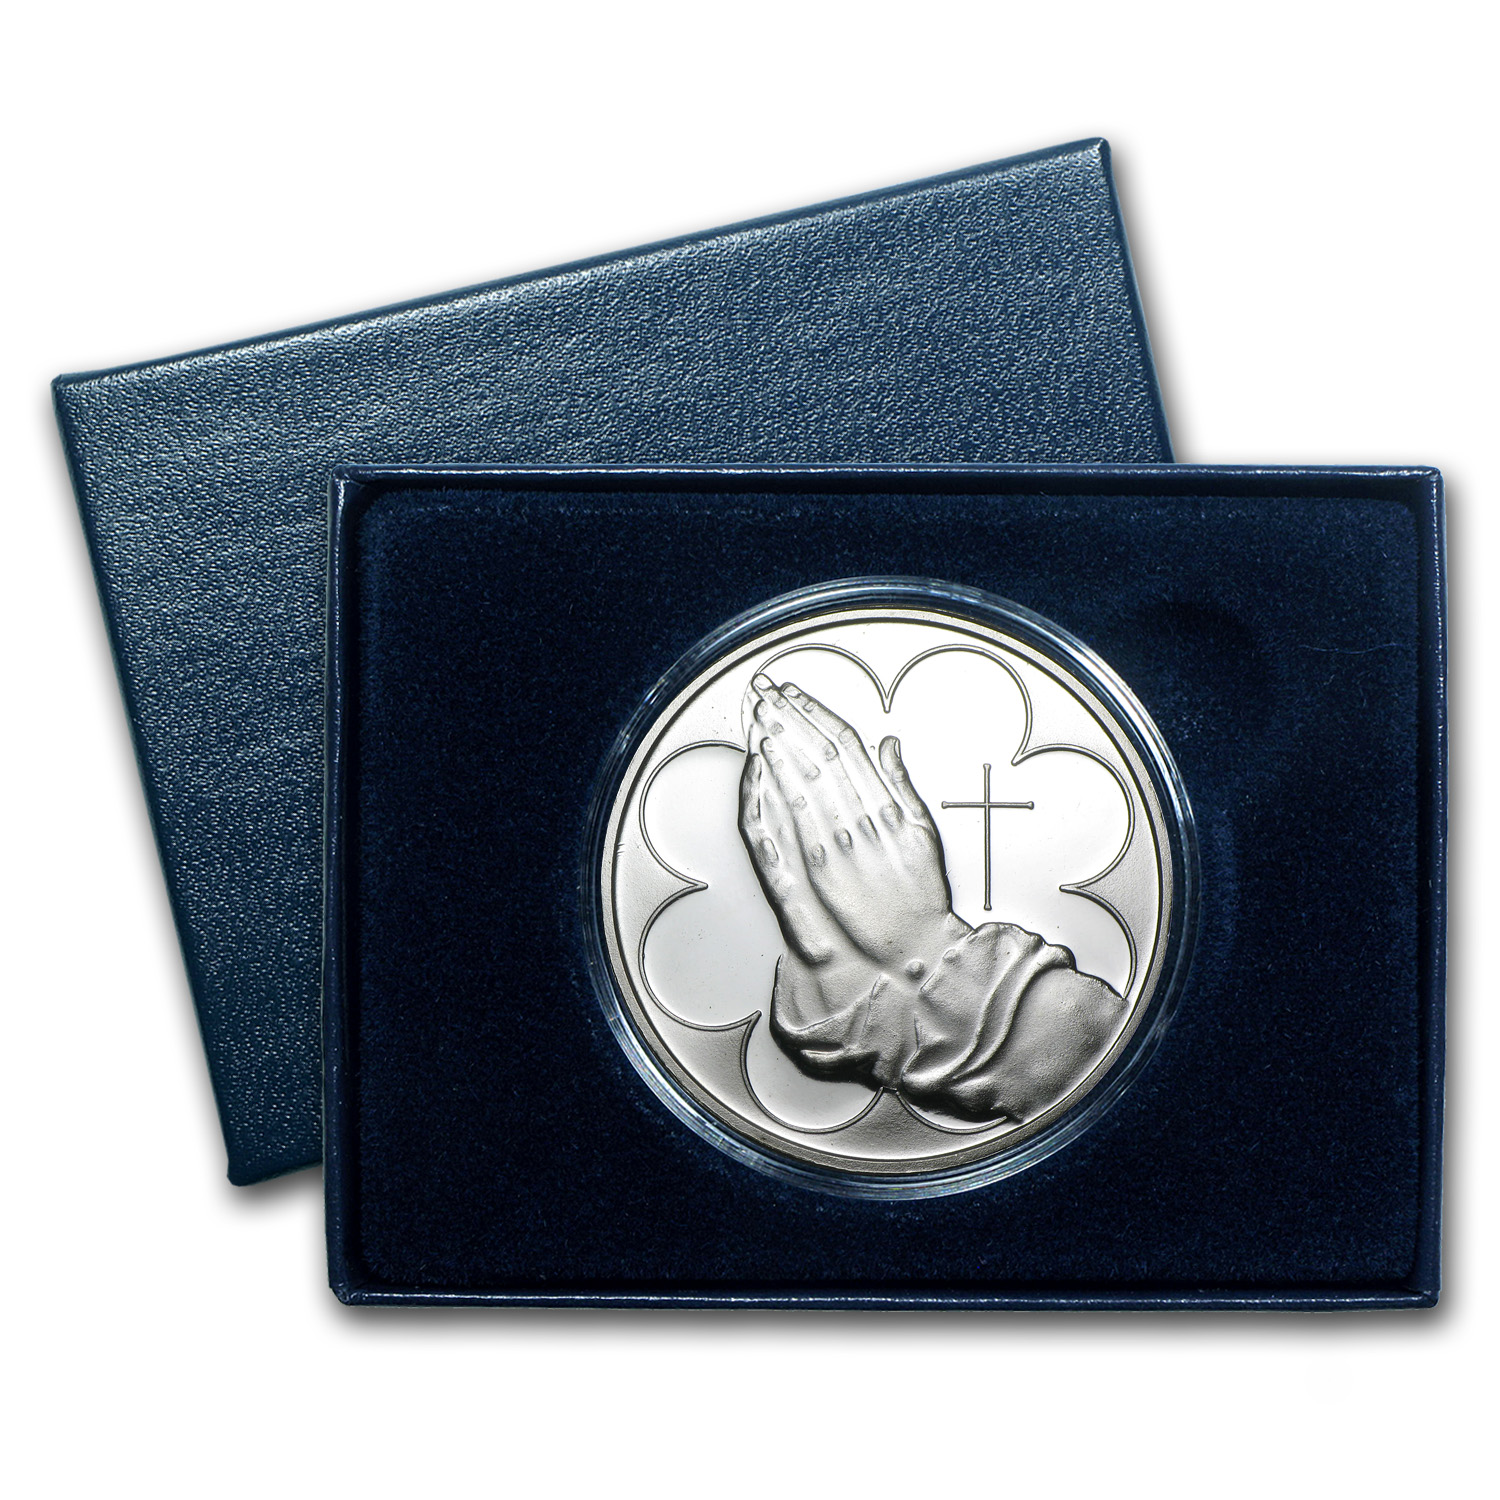 1 oz Silver Rounds - Praying Hands (w/Box & Capsule)